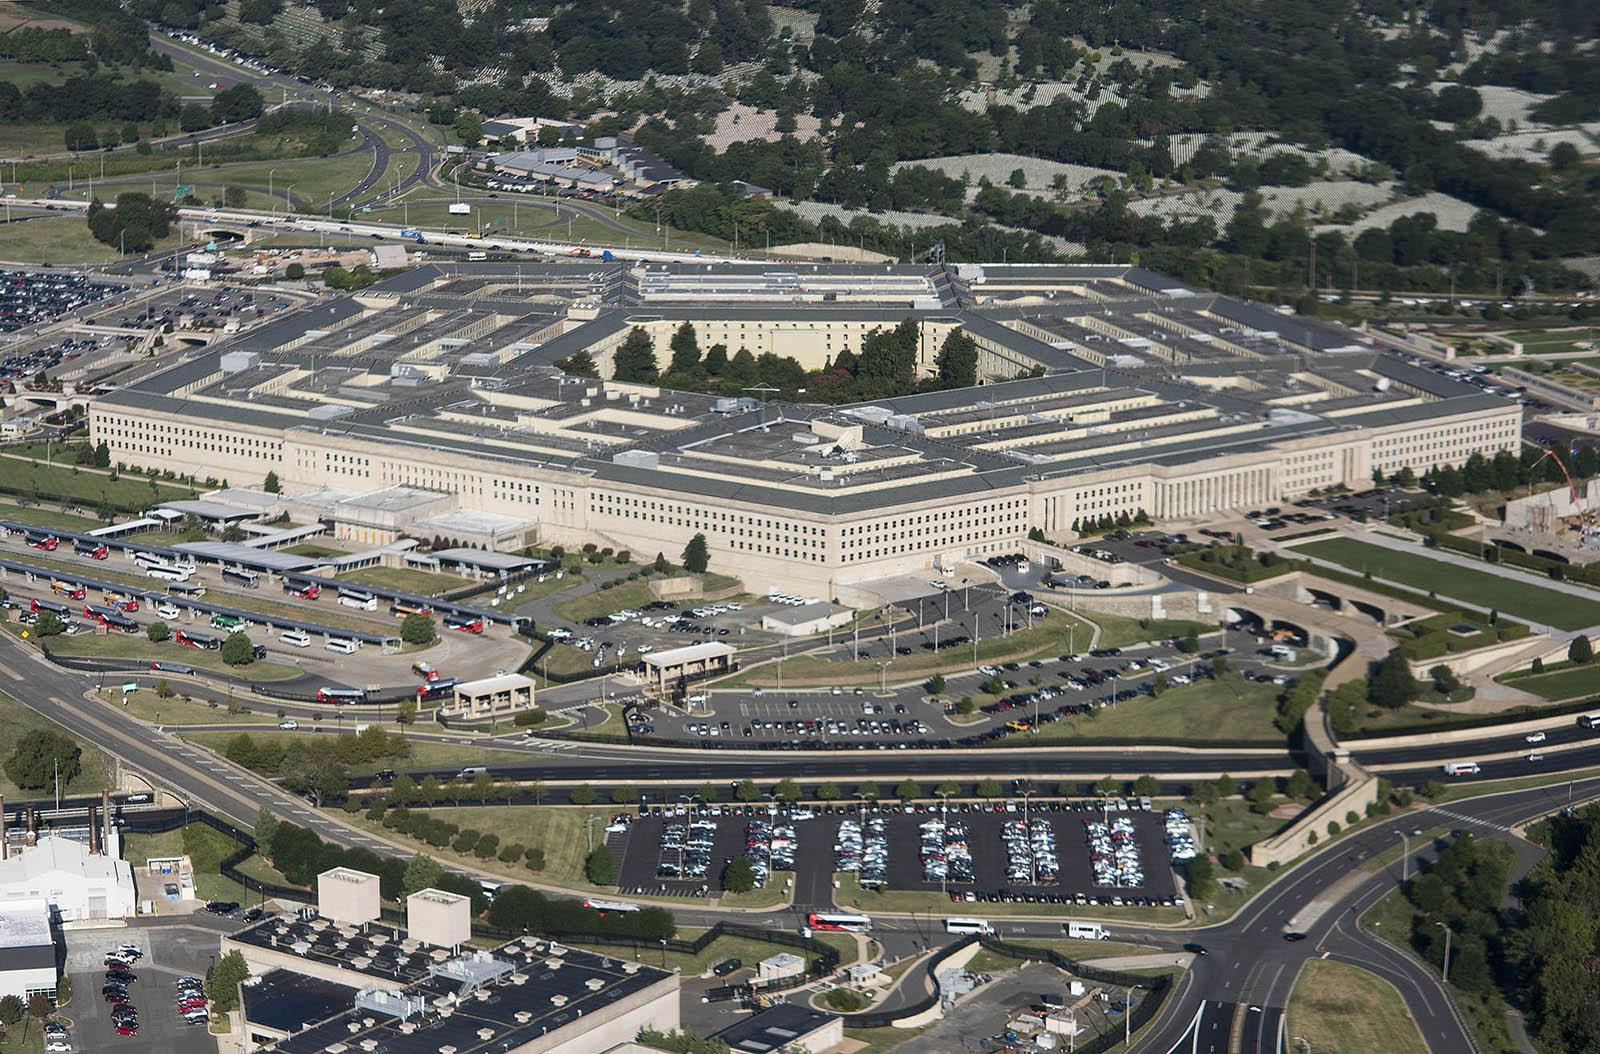 Aerial view of the Pentagon building.